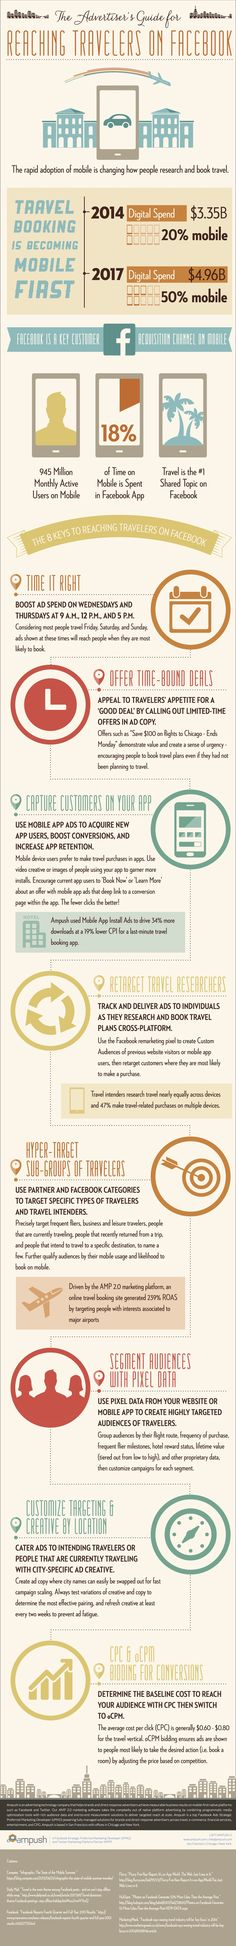 Advertiser's guide to reaching travelers on Facebook